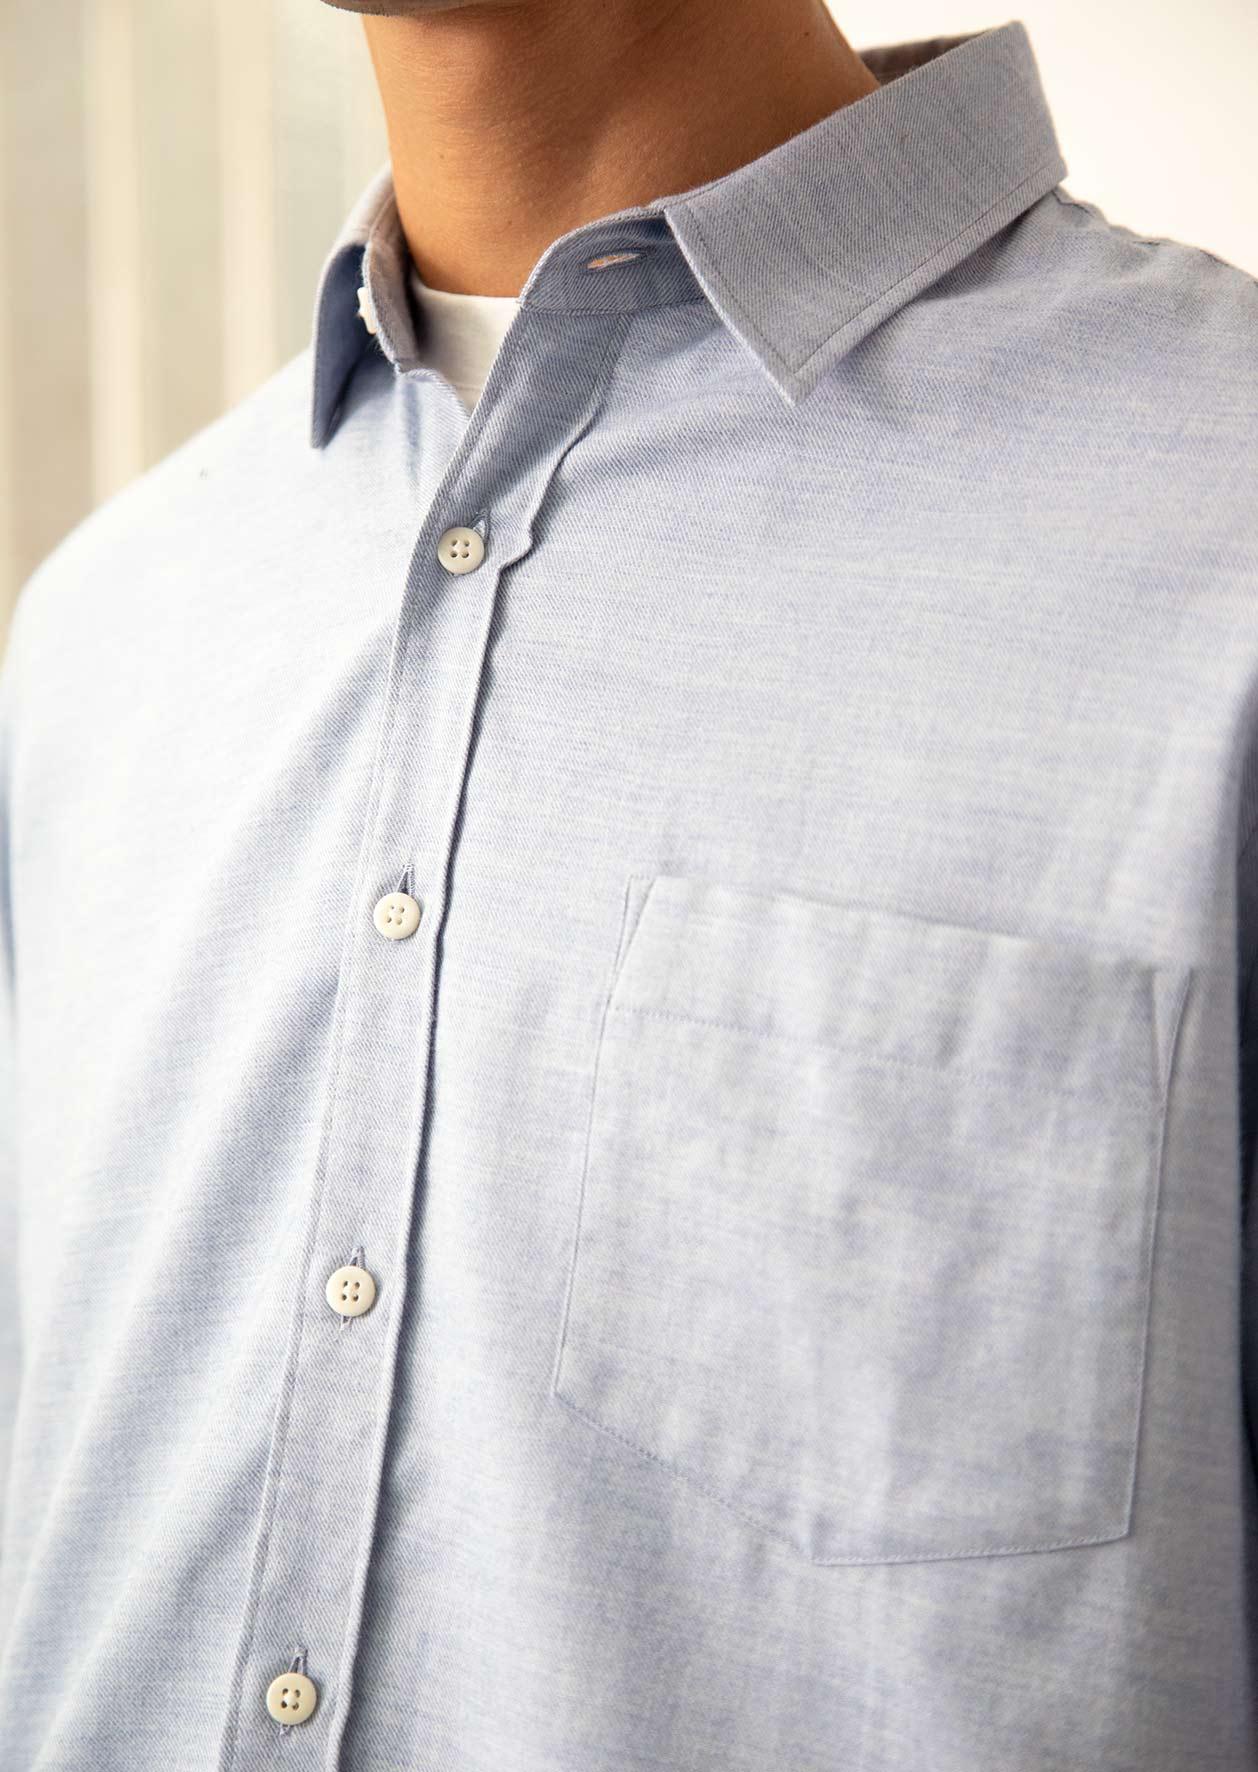 De Bonne Facture - Essential shirt - Cotton wool flannel - Denim blue